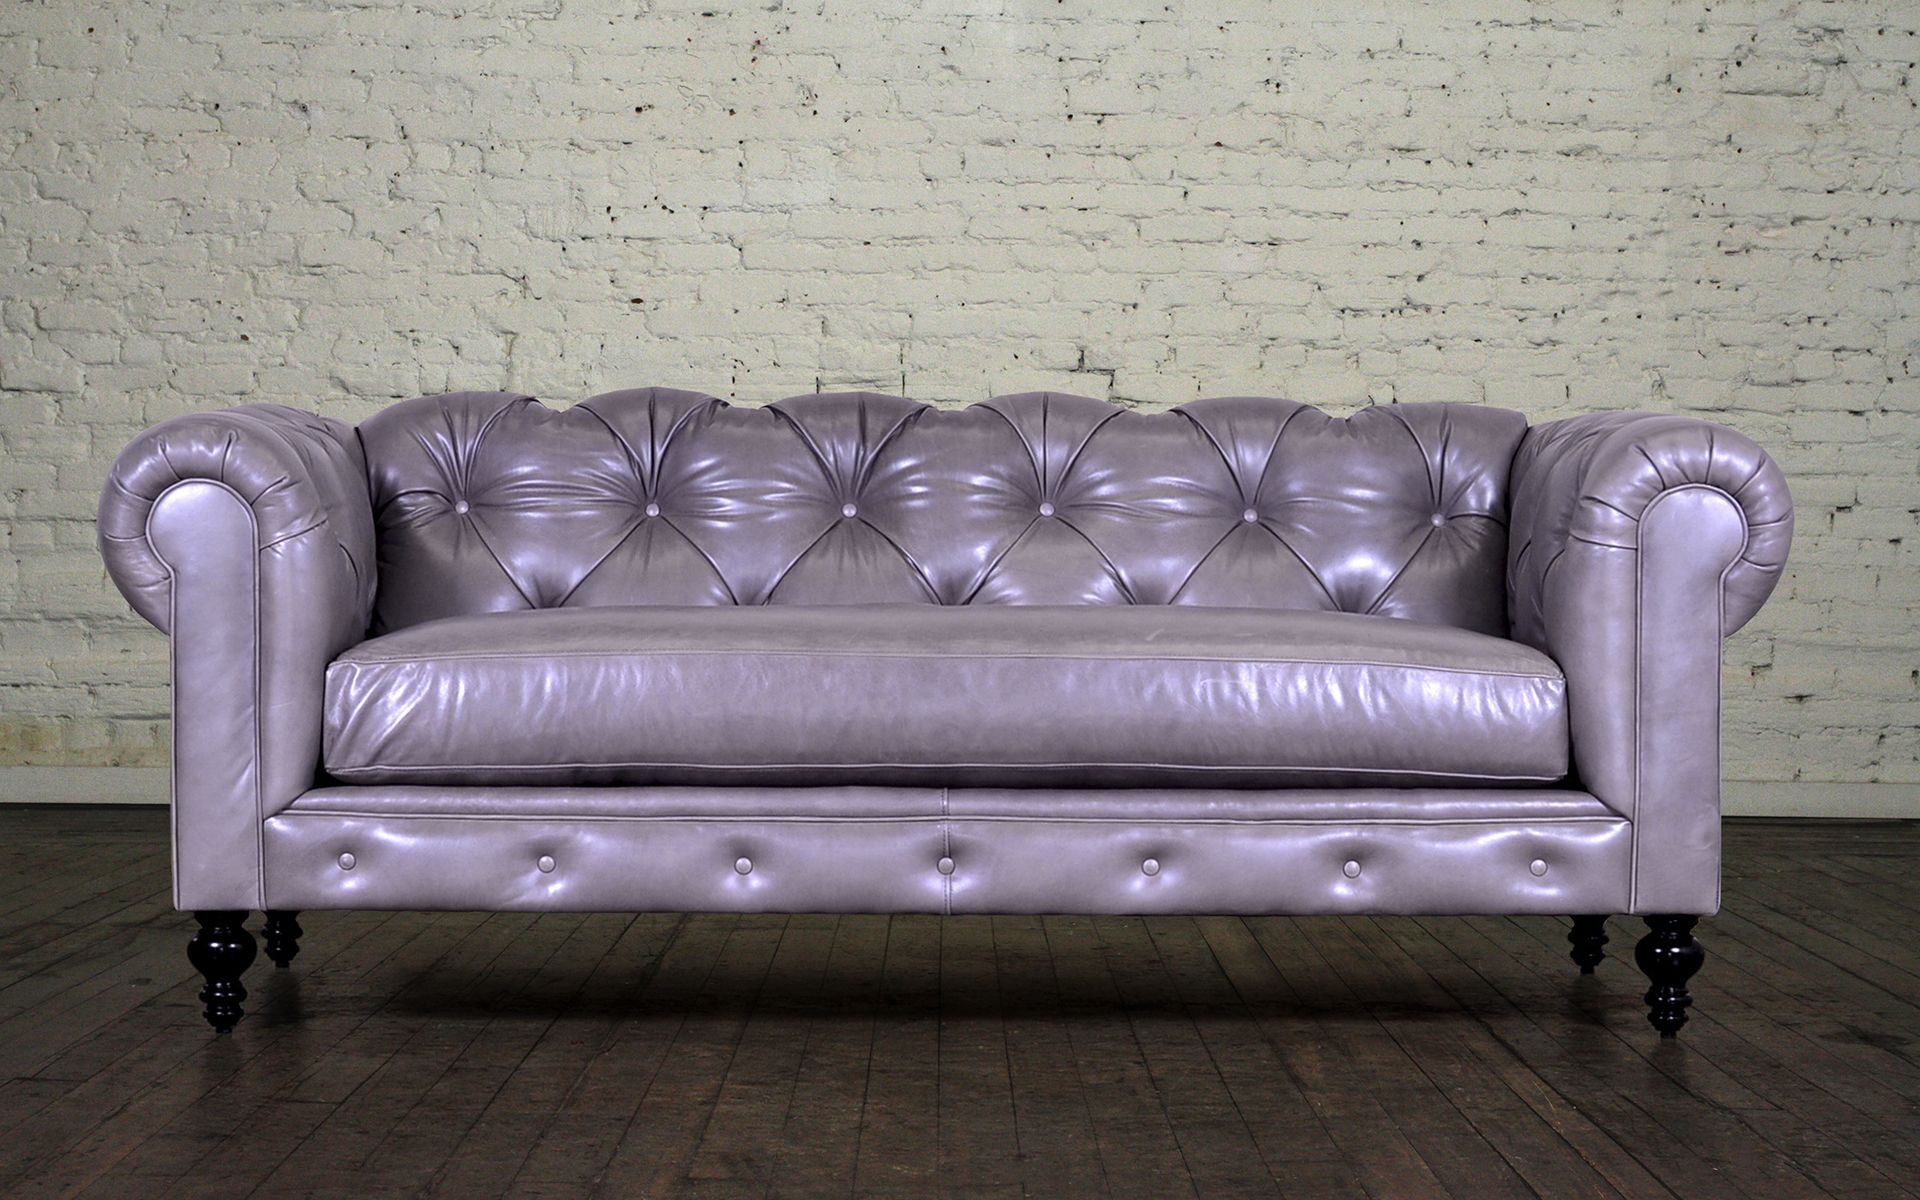 Classic Chesterfield Leather Sofa - Made in USA